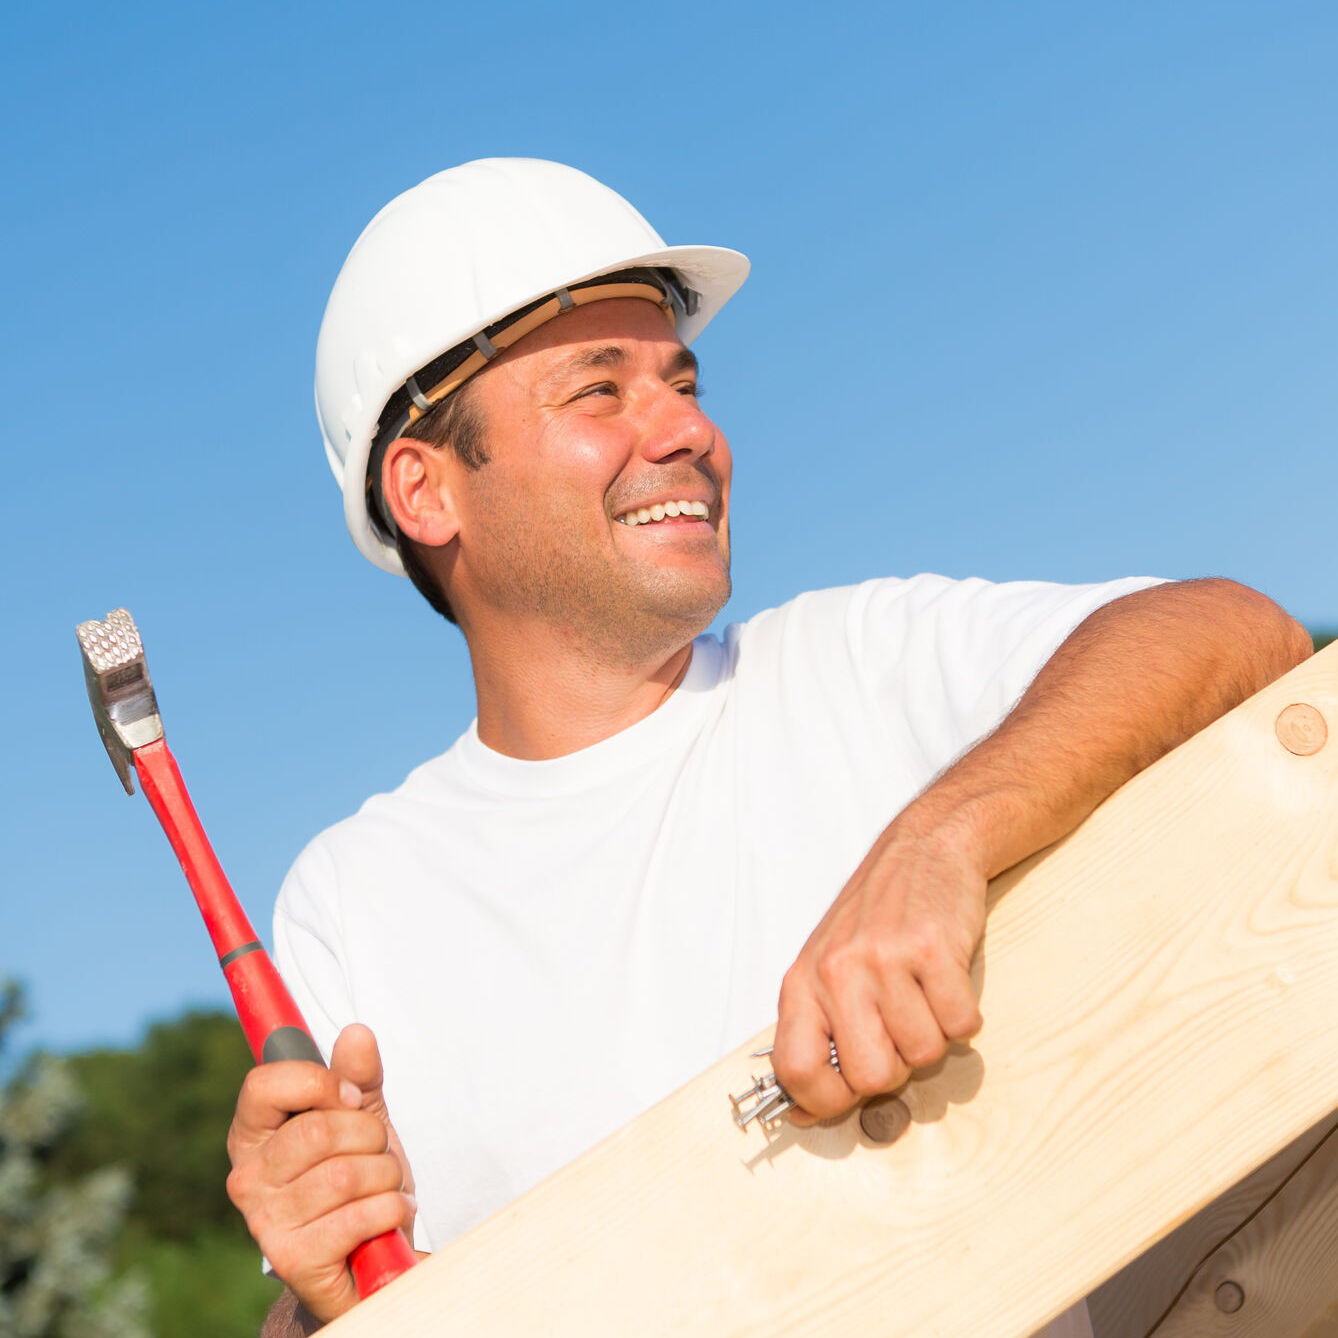 Residential Roofer smiling